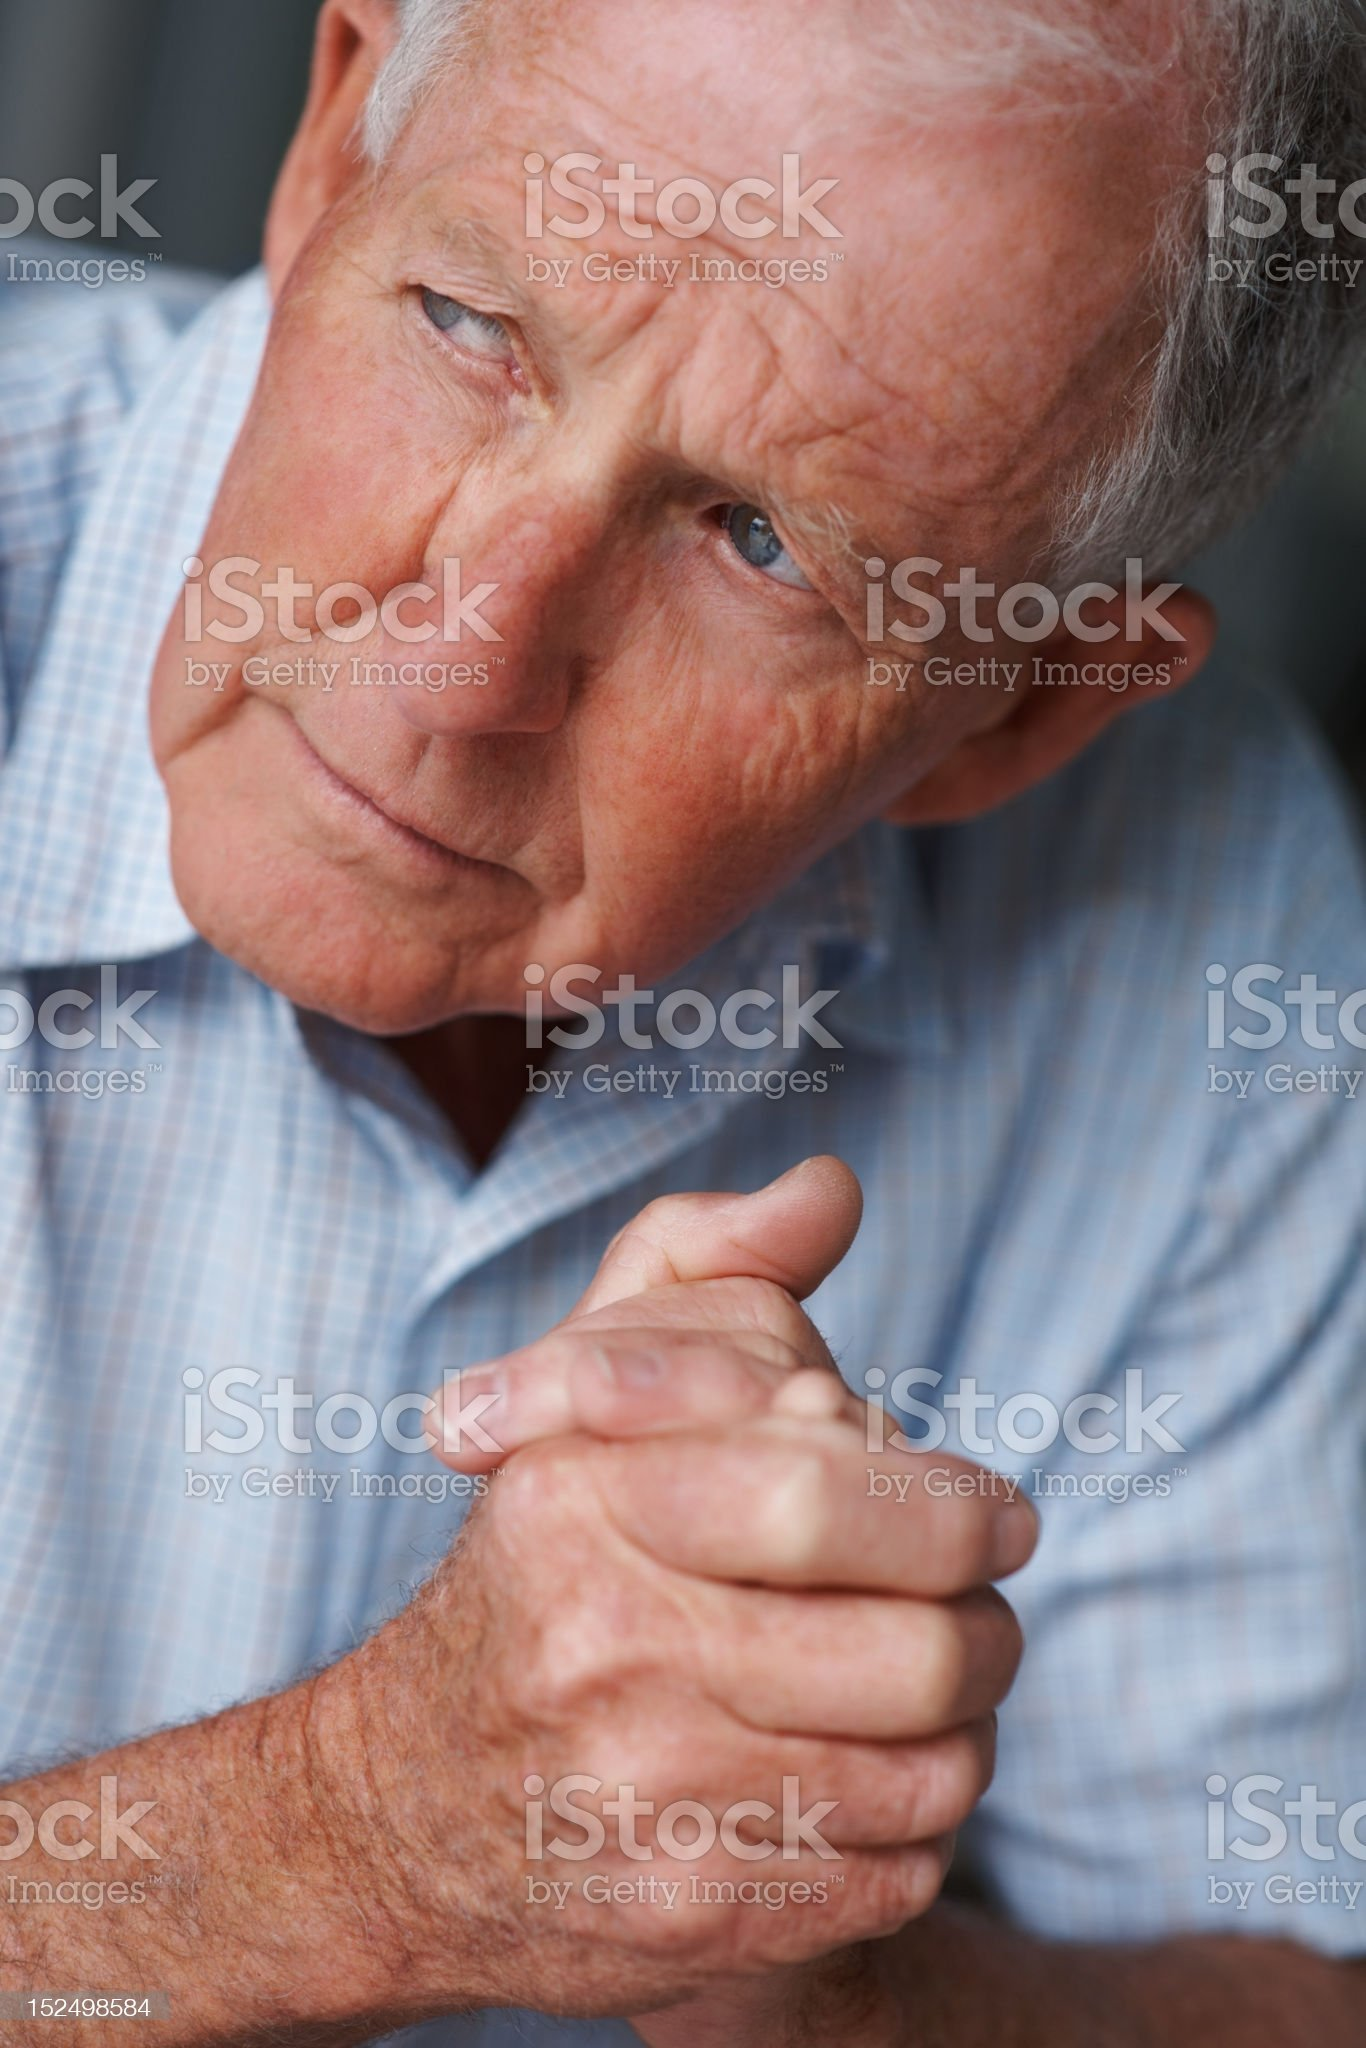 Depressed elderly man lost in thought royalty-free stock photo